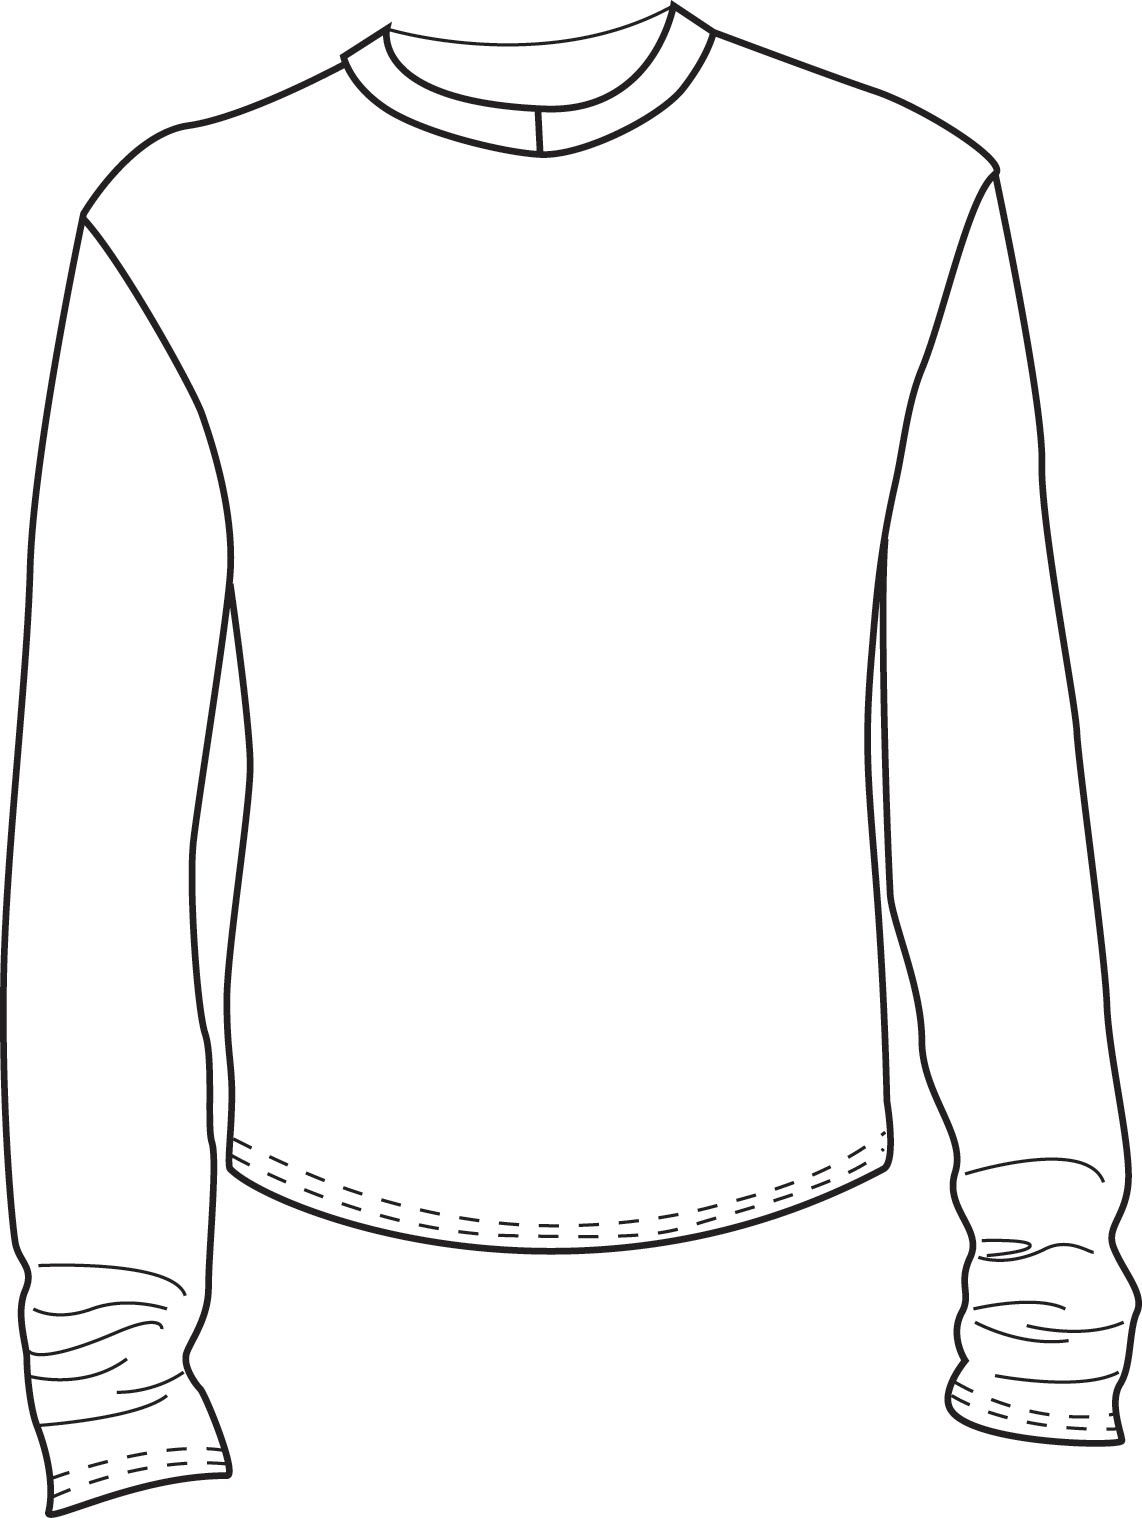 T shirt flat coloring pages for Tshirt coloring page